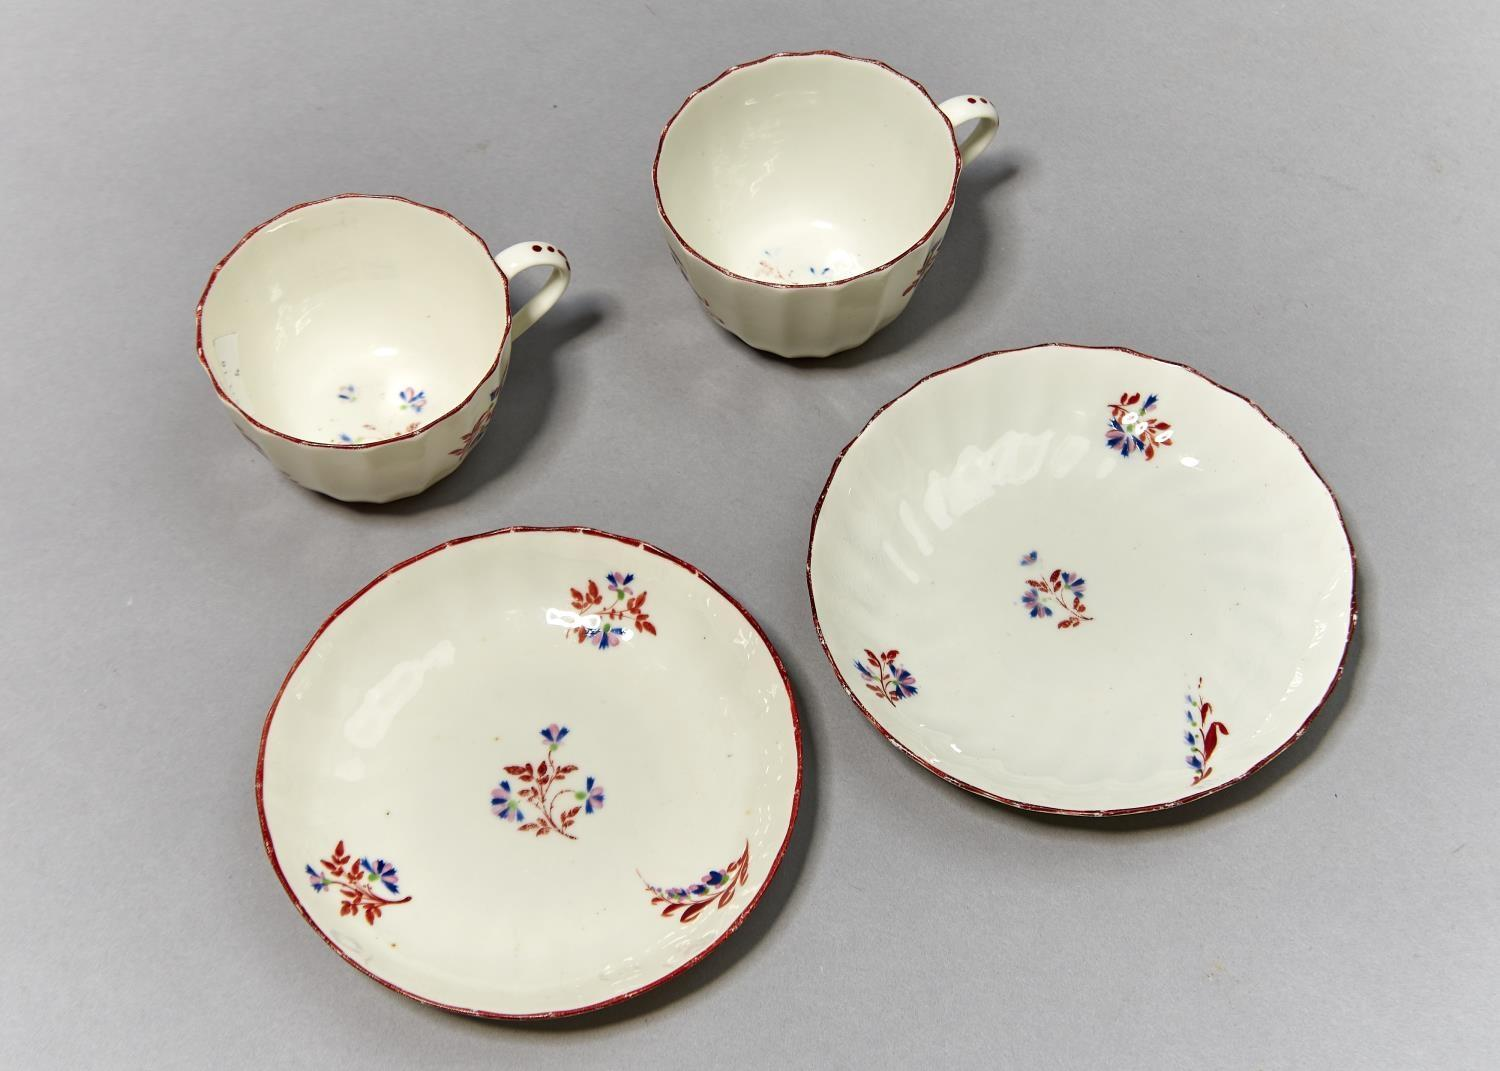 TWO PINXTON FLUTED TEACUPS AND SAUCERS, PATTERN 1 (RED SPRIG), C1800, SAUCER 14CM DIAM Localised - Image 3 of 3